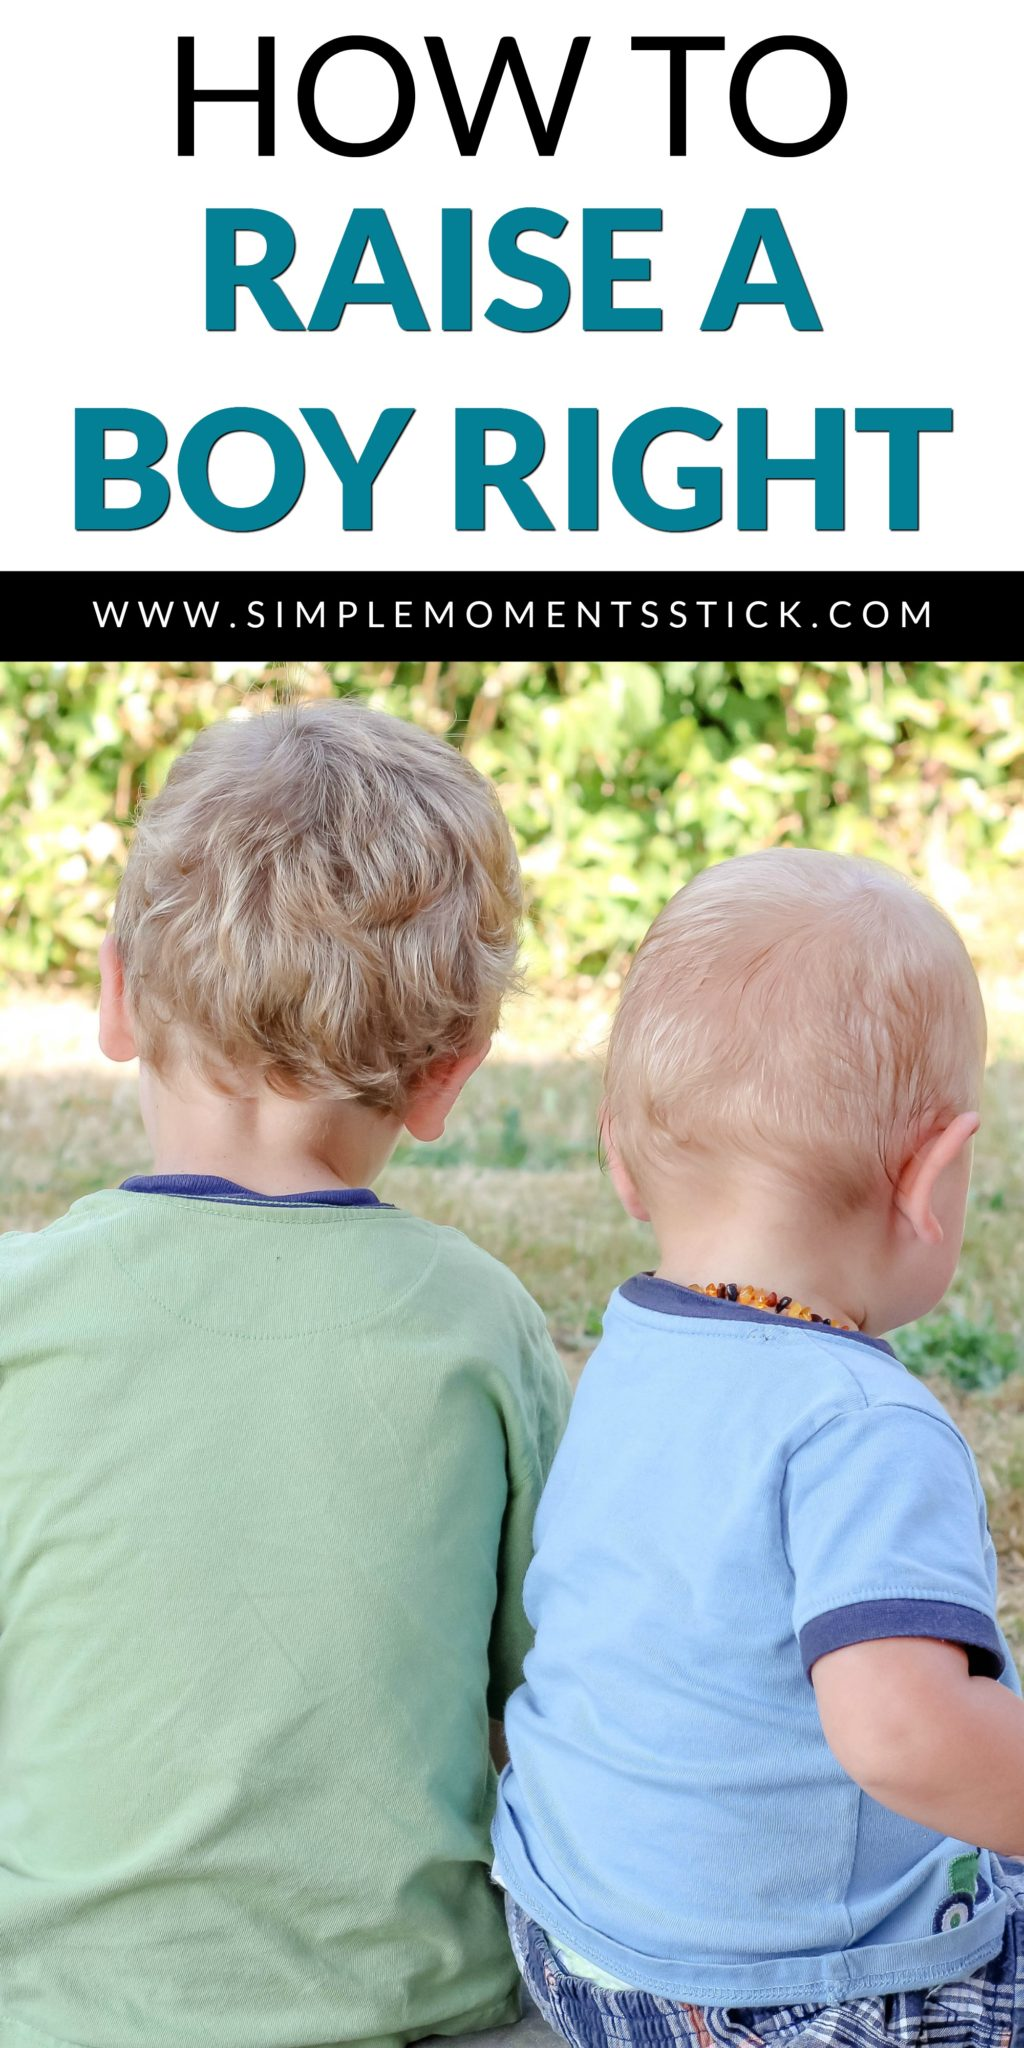 Five tips on how to raise a boy right that you don't want to miss!